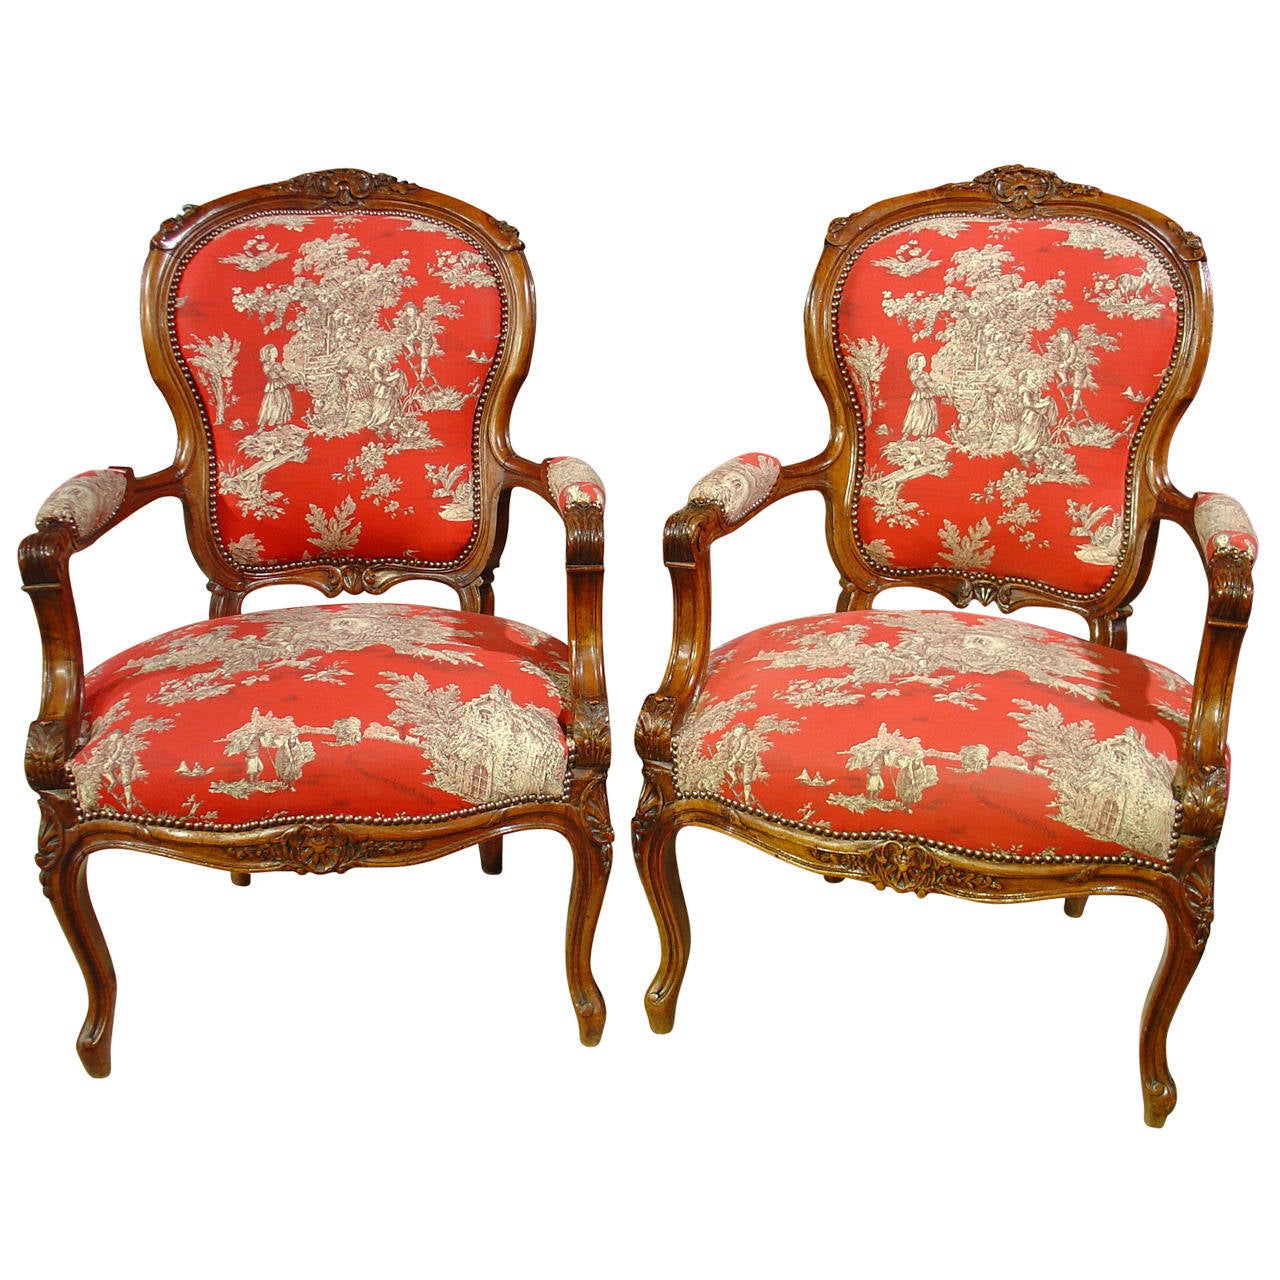 Fauteuils Style Louis Xv Pair Of Louis Xv Style Walnut Fauteuils With Toile De Jouy Upholstery